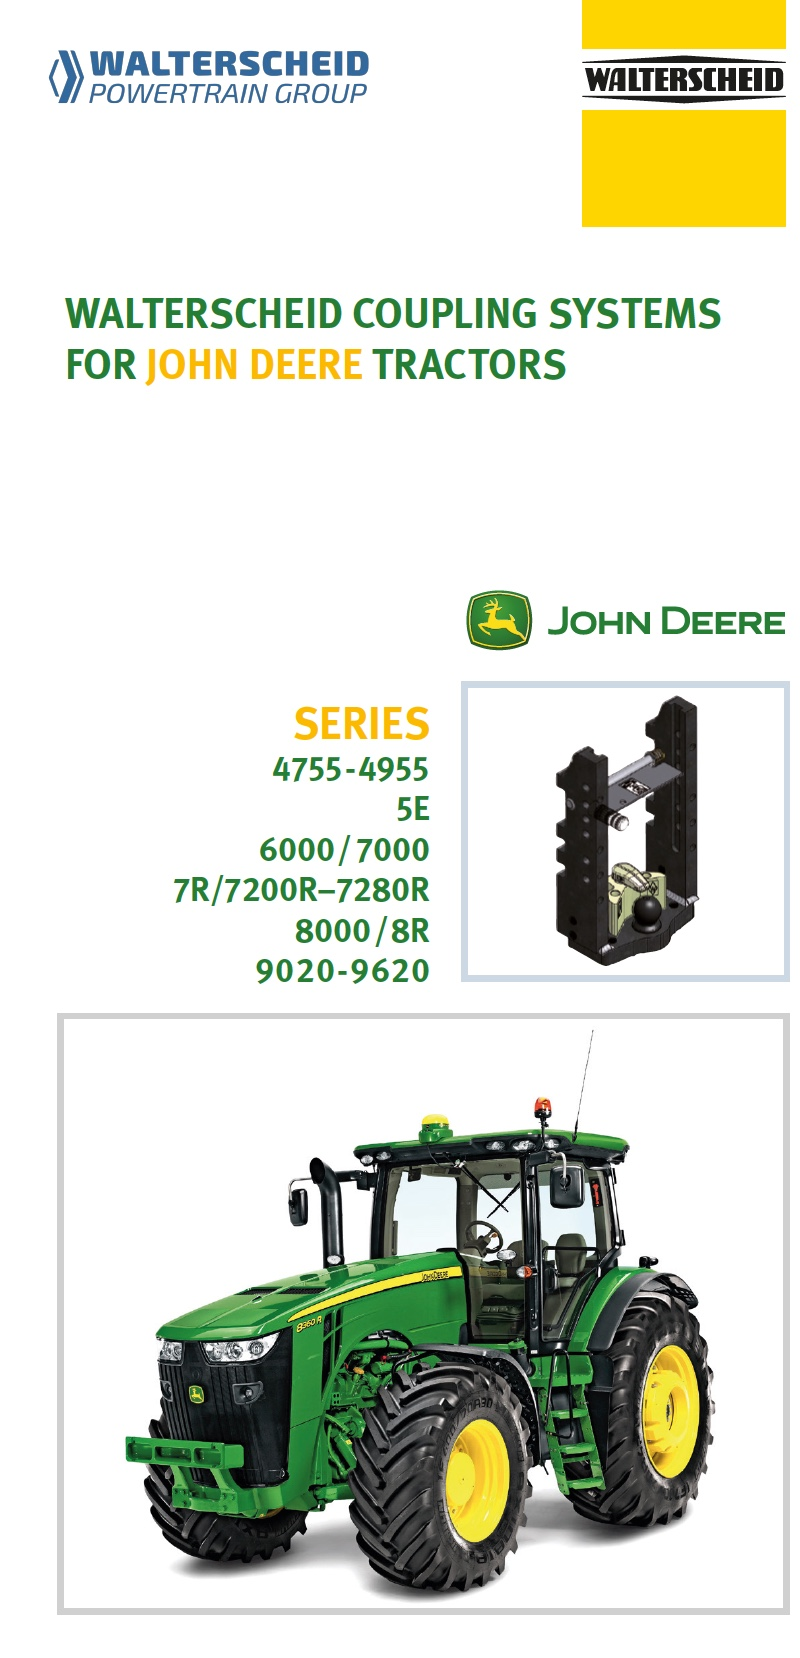 Coupling systems for John Deere tractors